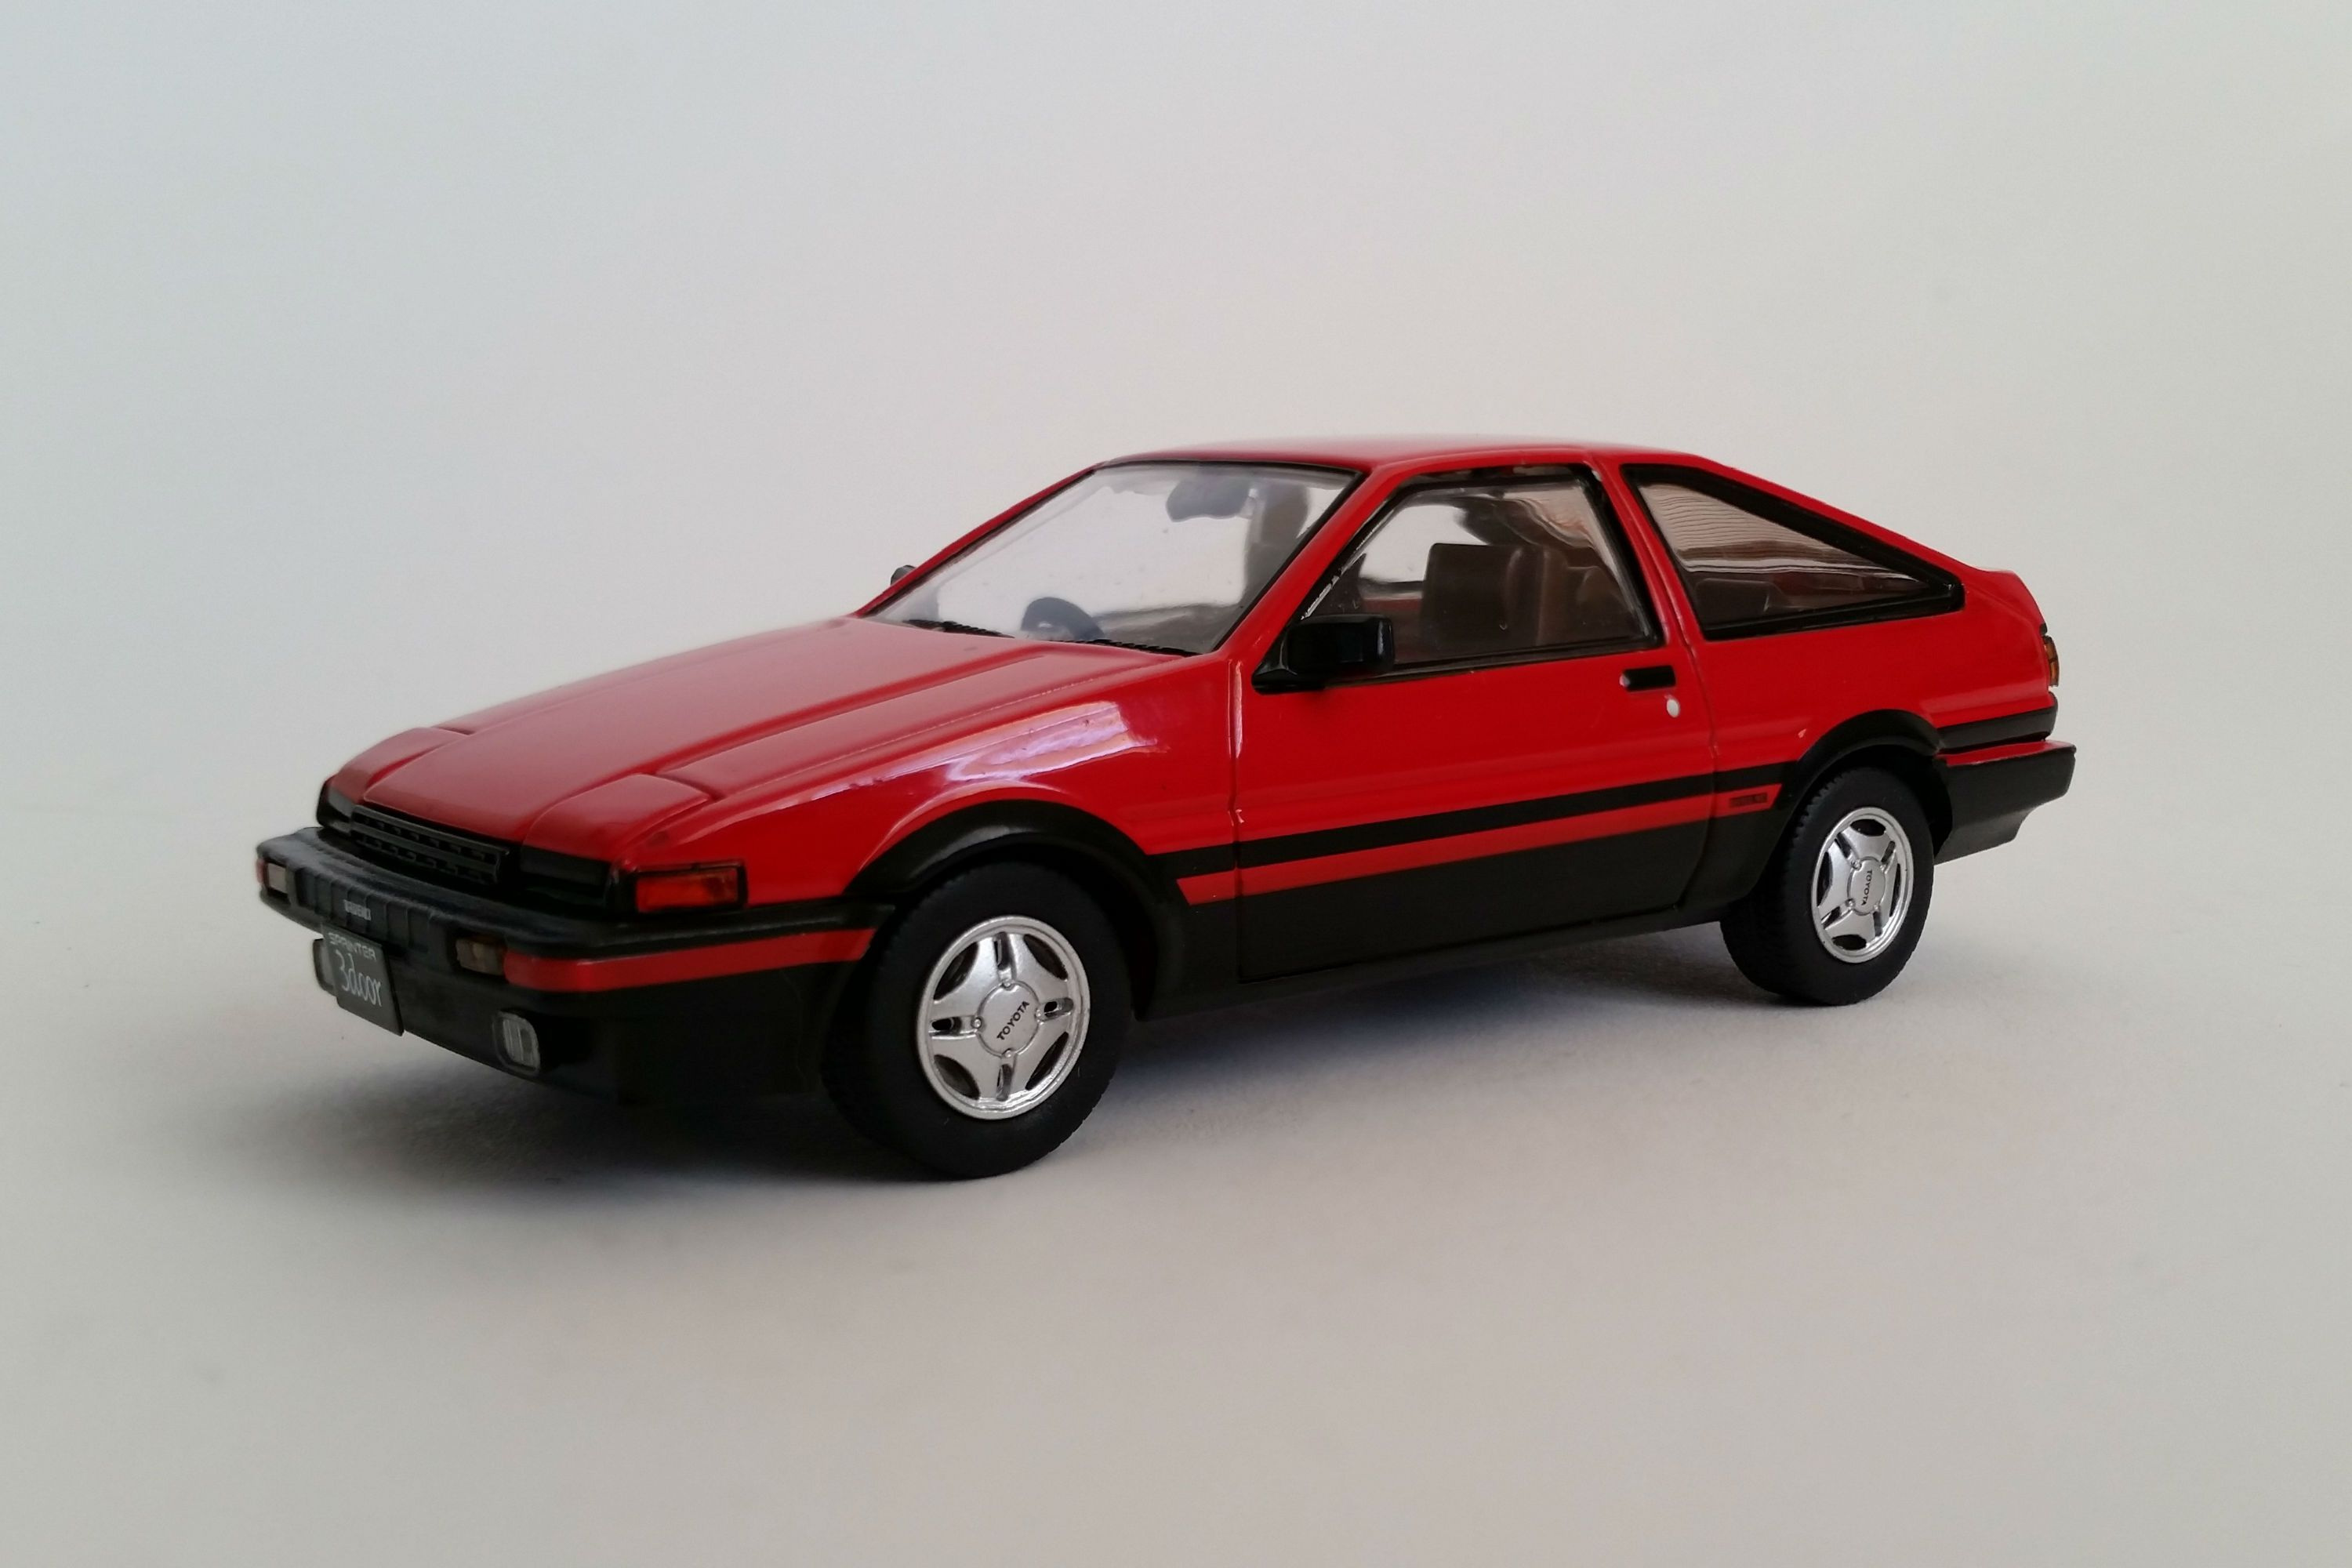 Toyota Sprinter Trueno Ae86 Gt Apex 1 43 Scale Diecast Model